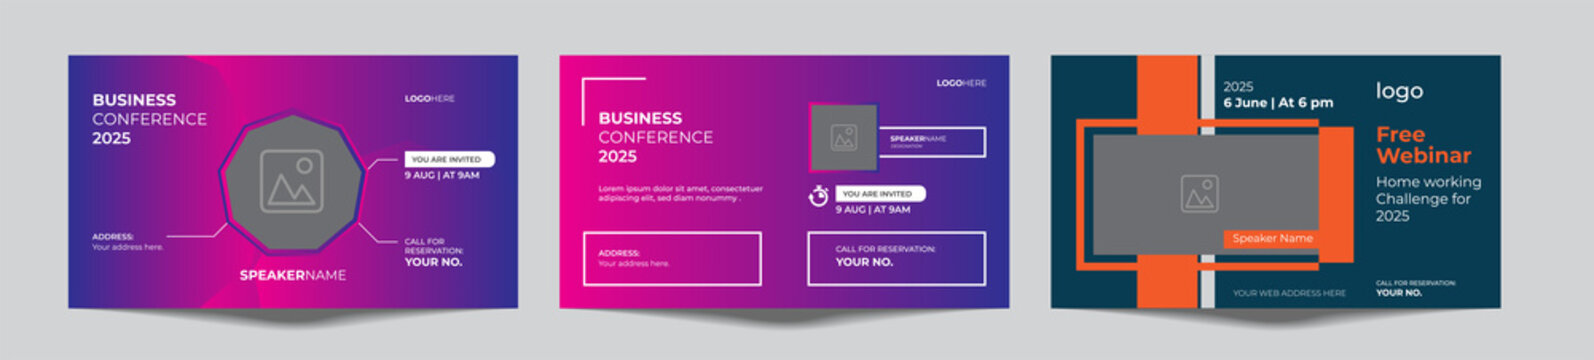 webinar online or offline conference banner template package vector eps 10.Banner live webinar promotion for social media. online meeting work from home.  Announcement poster concept in flat style.